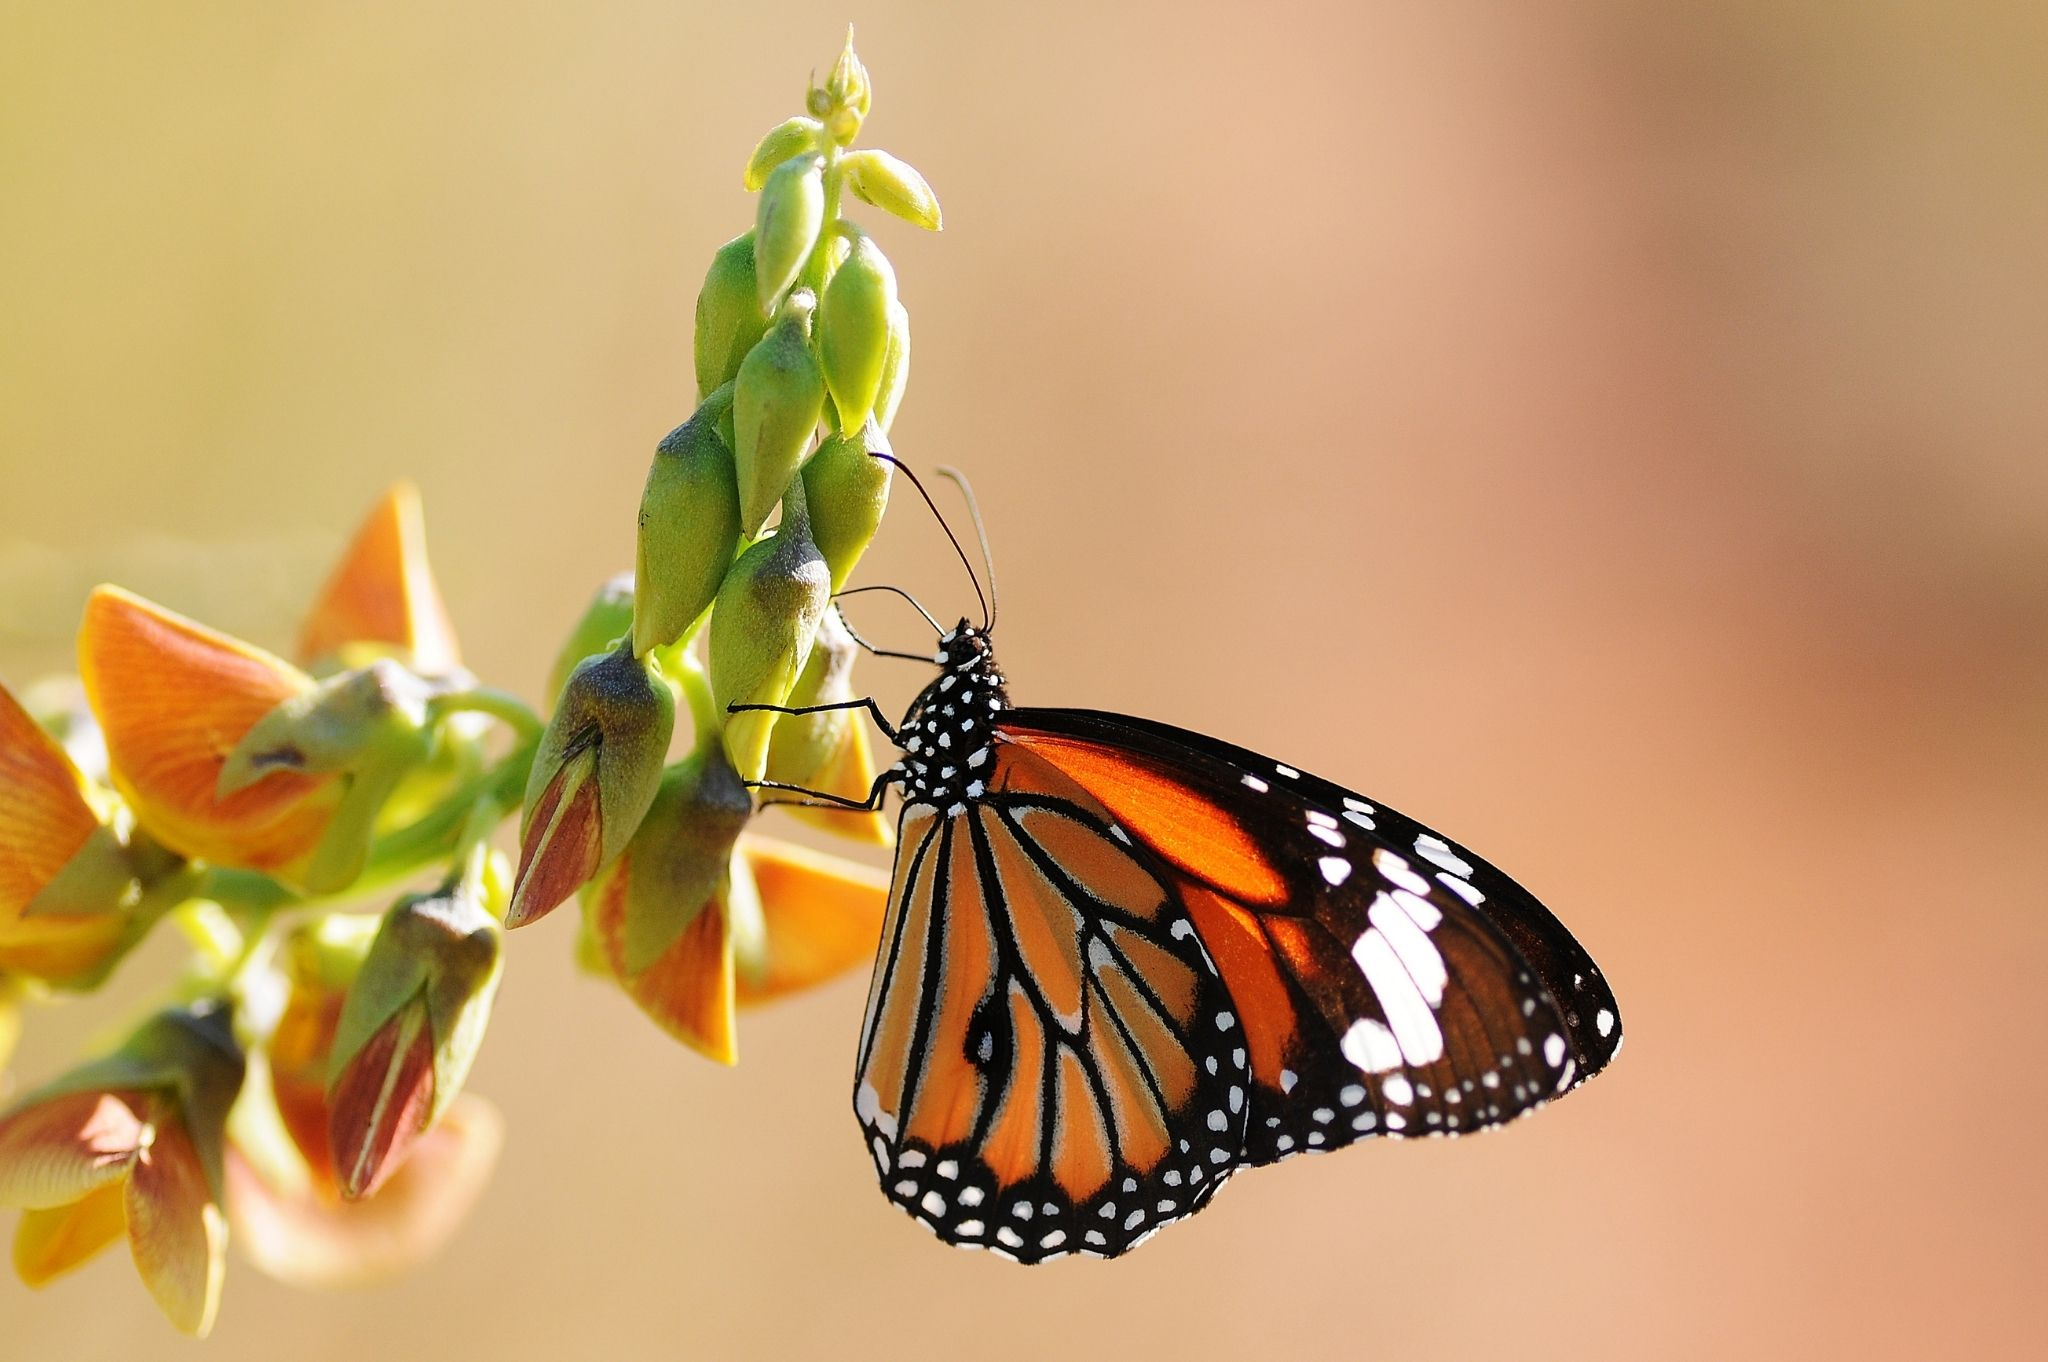 Image of a butterfly sitting on a plant at the Coffs Harbour Butterfly House in Coffs Harbour NSW